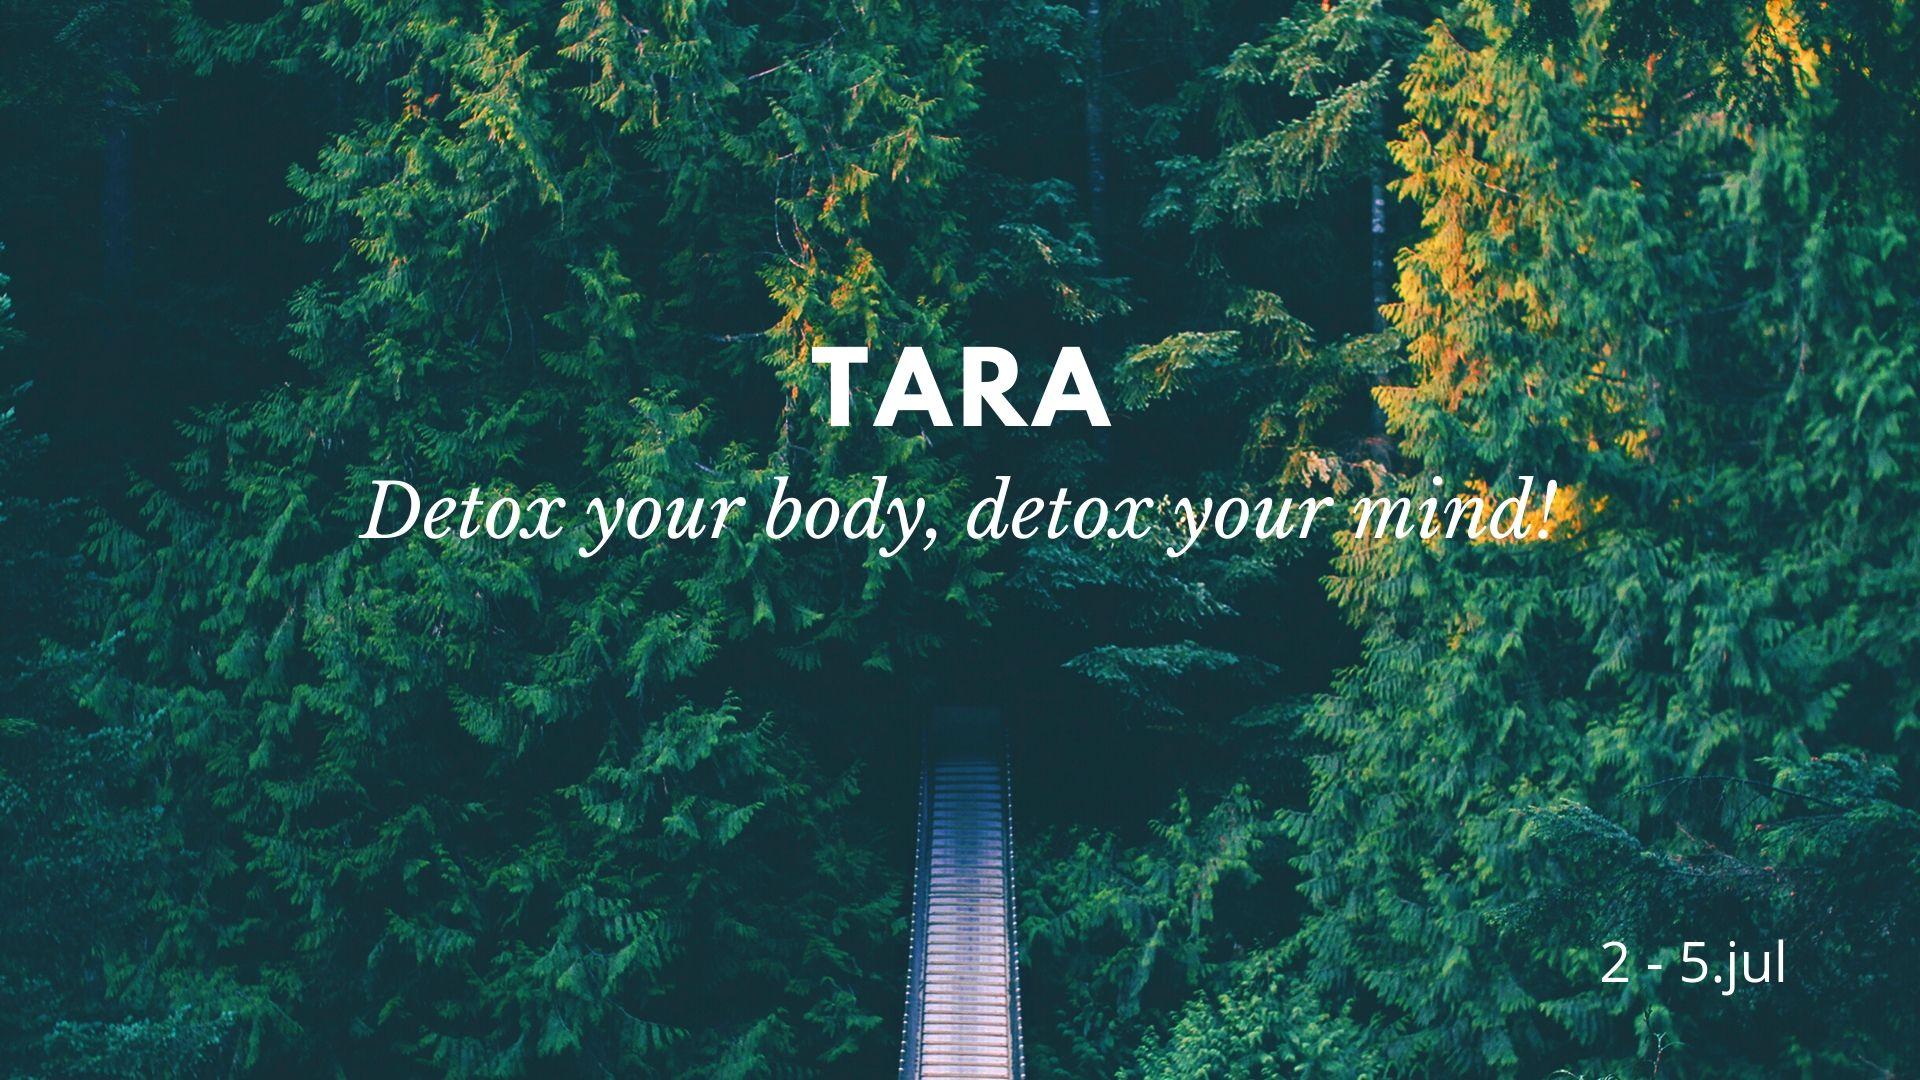 Detox your body and detox your mind - Tara, 2020.